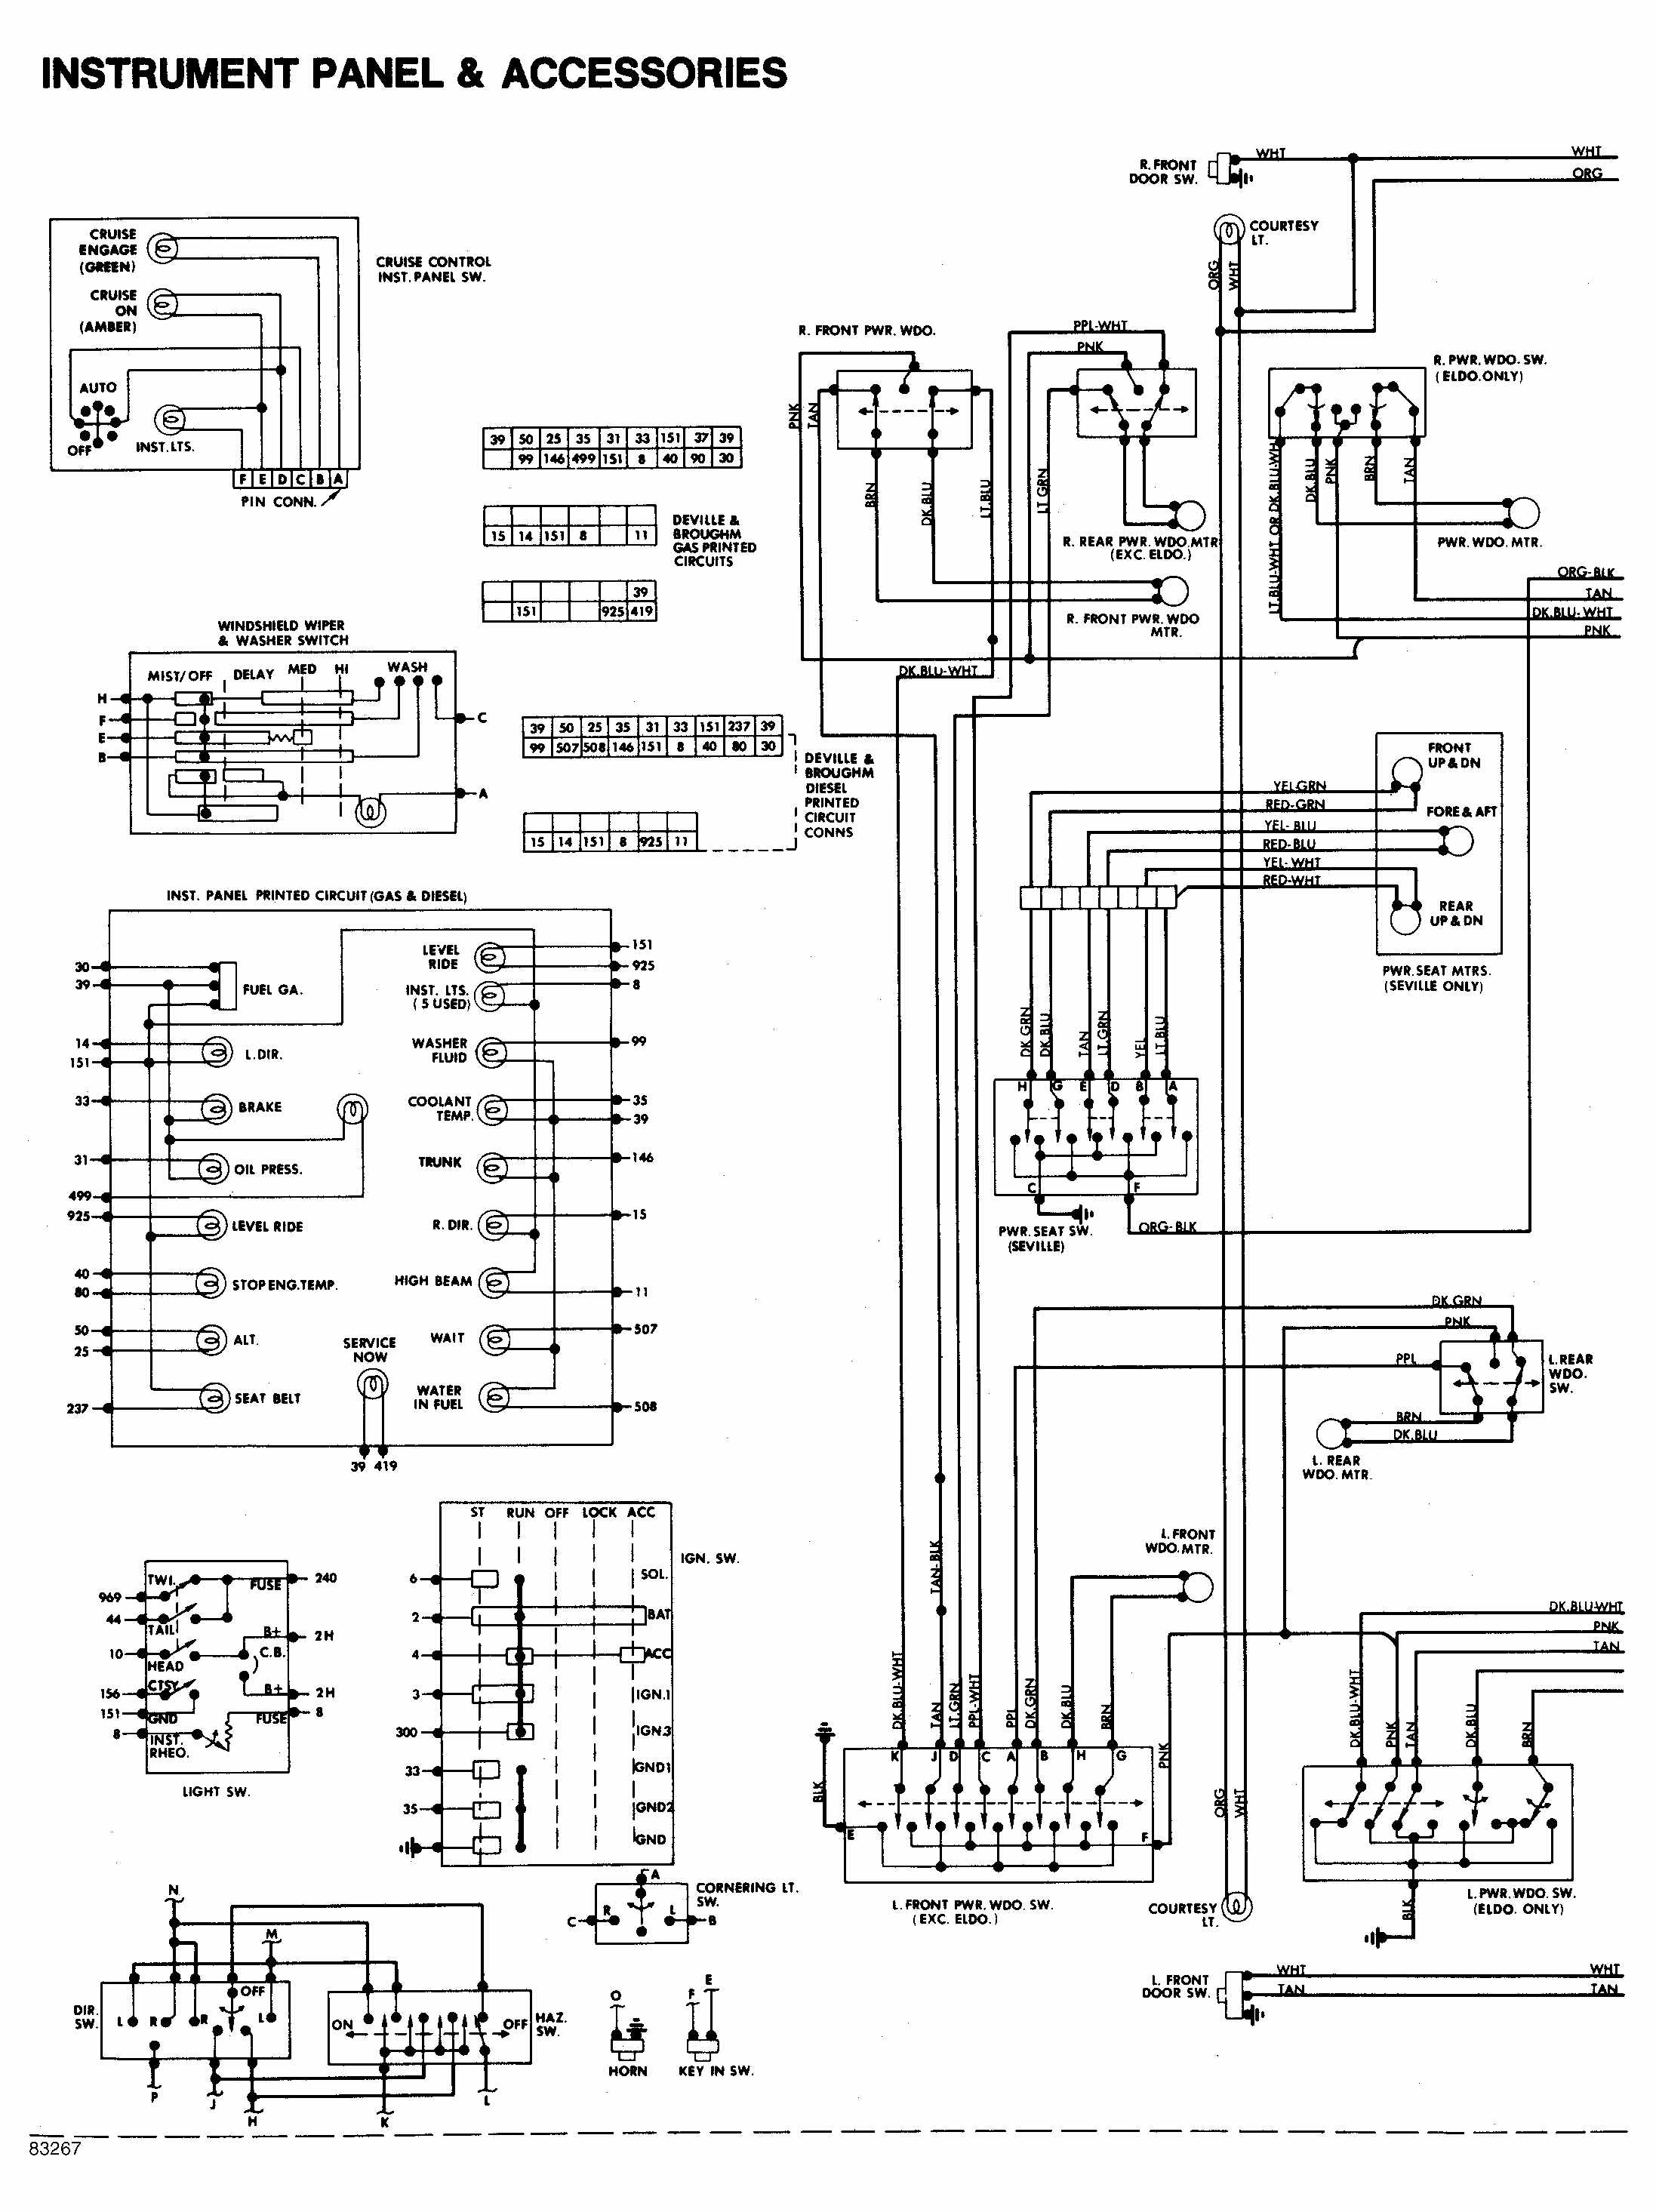 air ride pressure switch wiring diagram 2004 chevy silverado front suspension installation honeywell thermostat rth6350d1000 diagrams